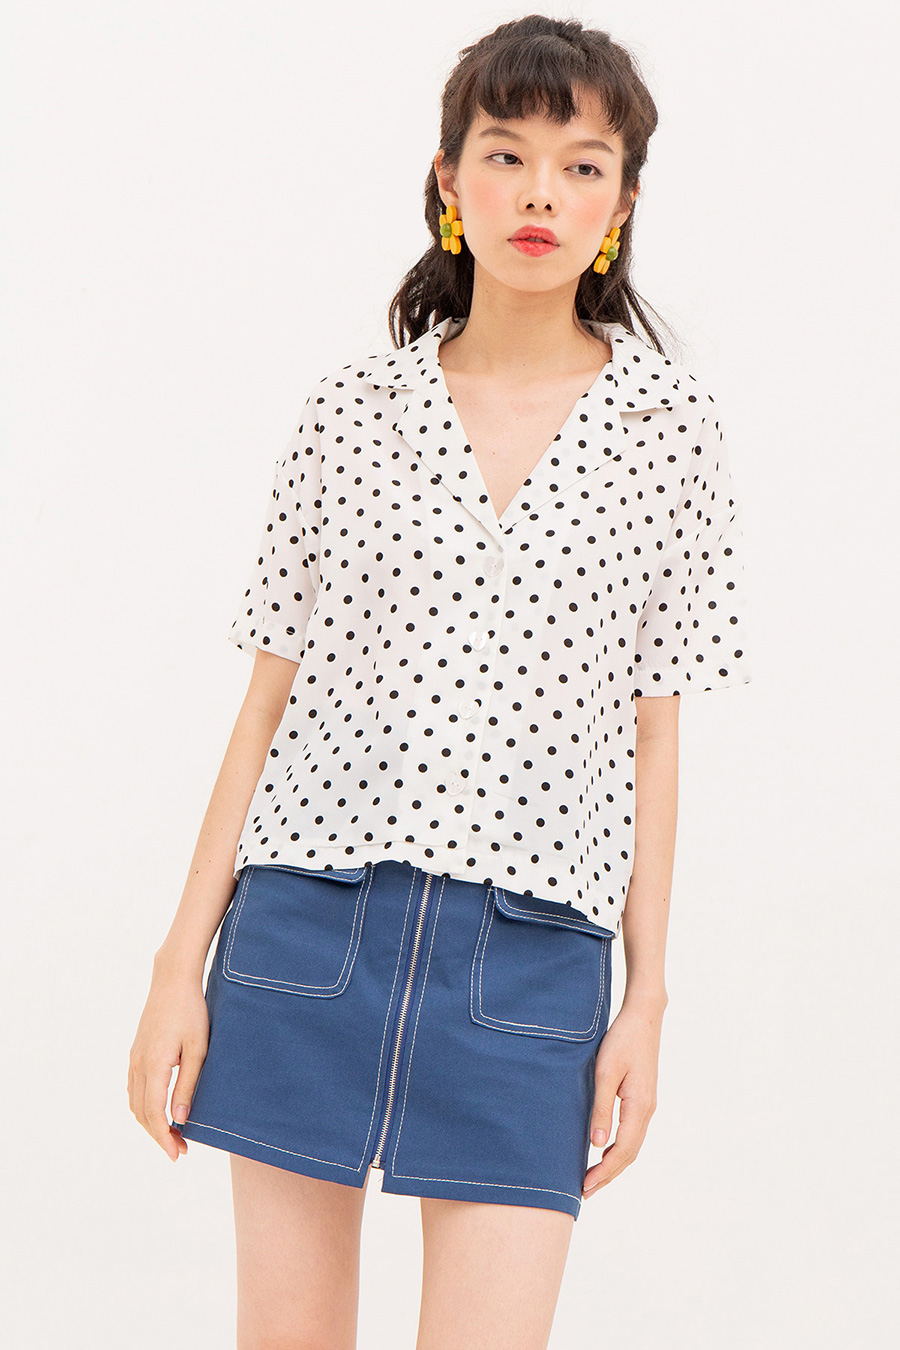 CESCA TOP - IVORY DOTTY